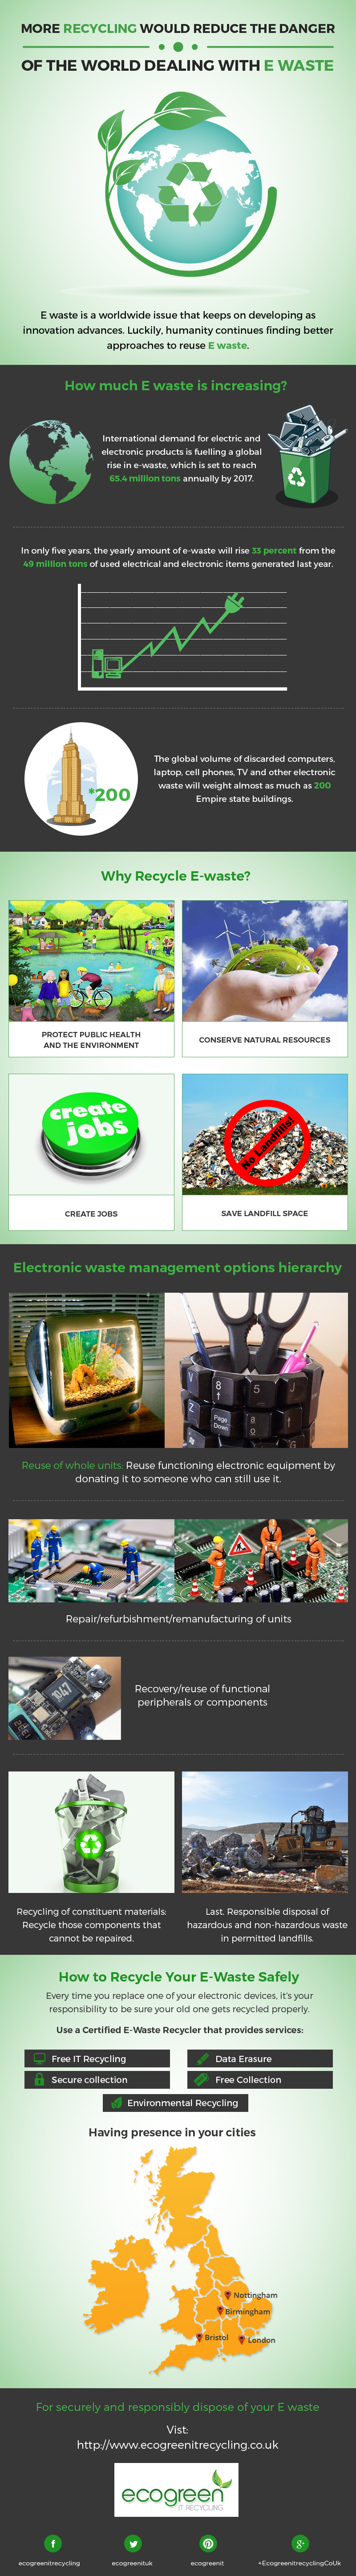 More recycling would reduce the danger of the World dealing with E waste